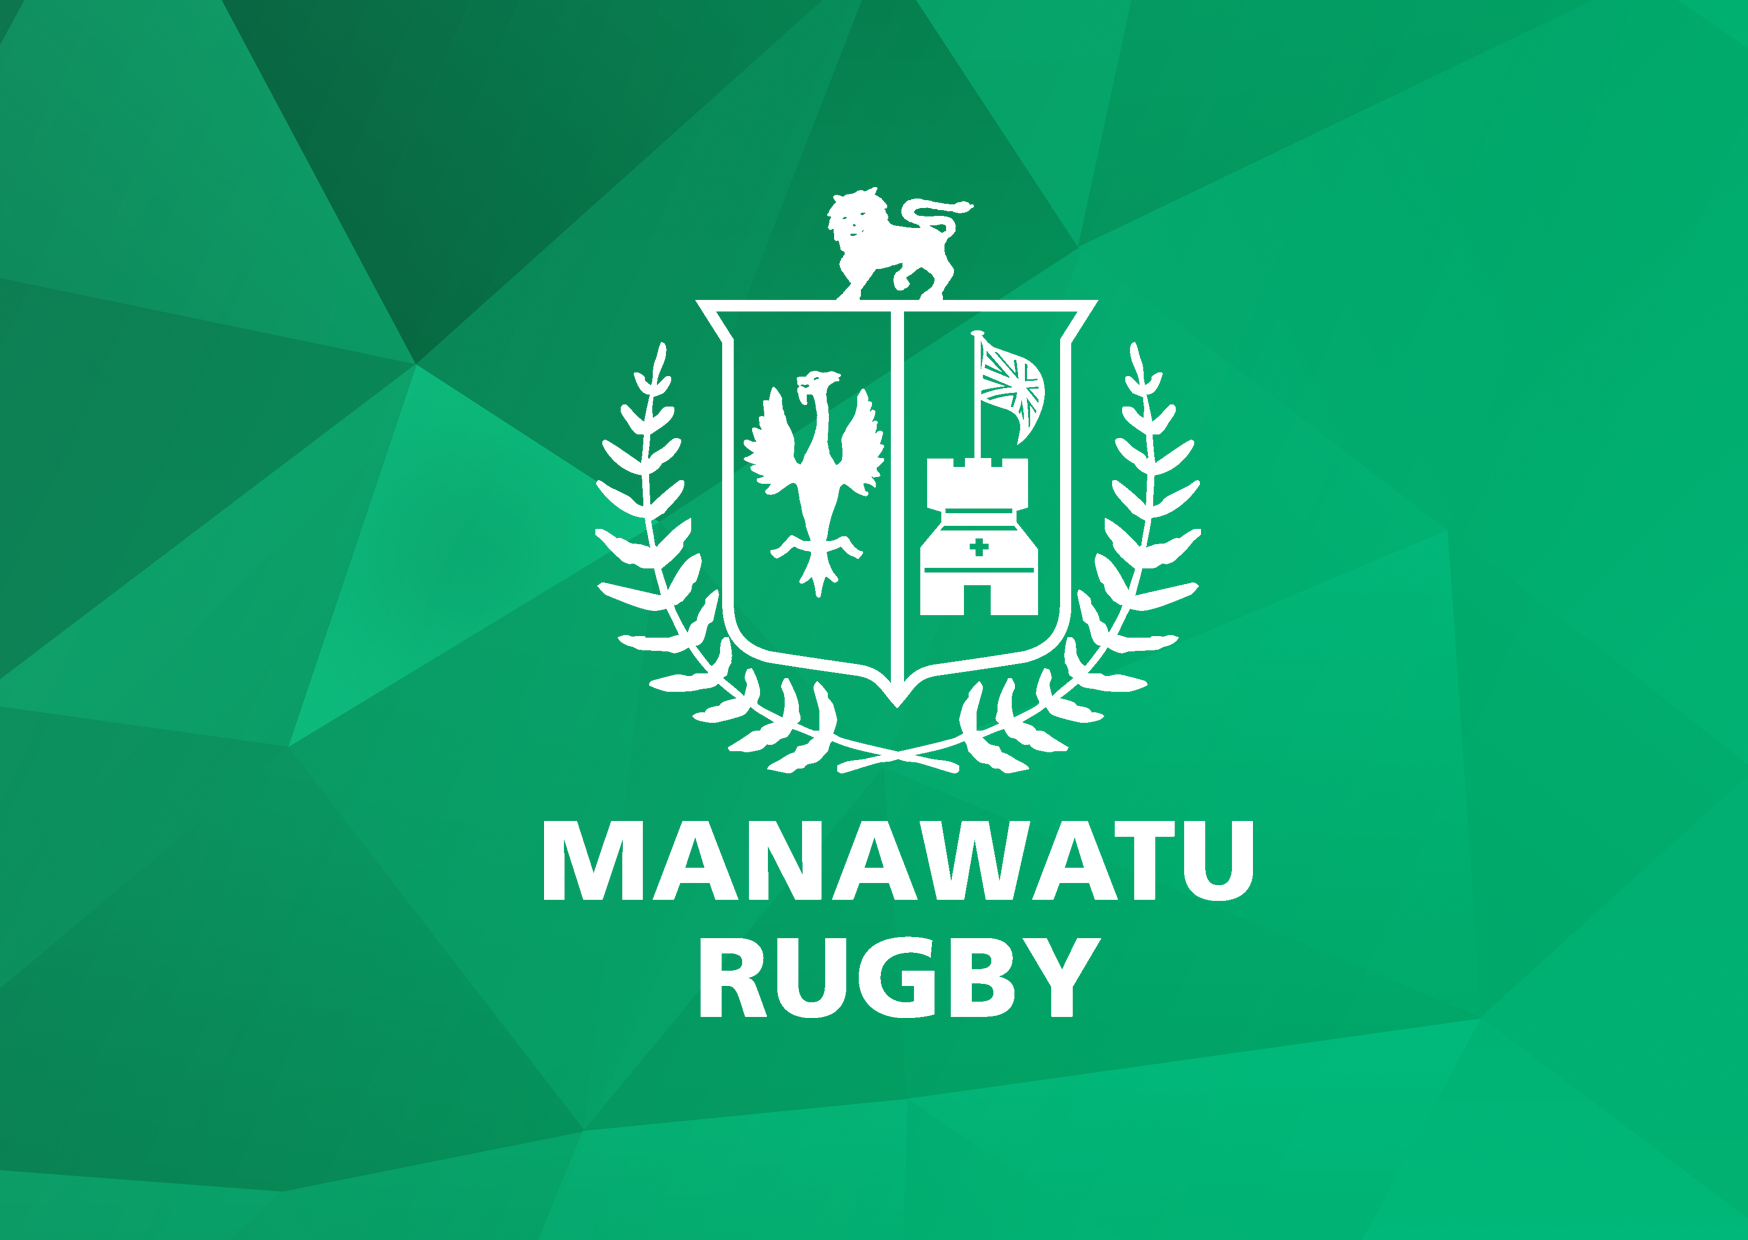 CALLING NOMINATIONS FOR ELECTED MEMBERS TO THE MANAWATU CLUB RUGBY EXECUTIVE